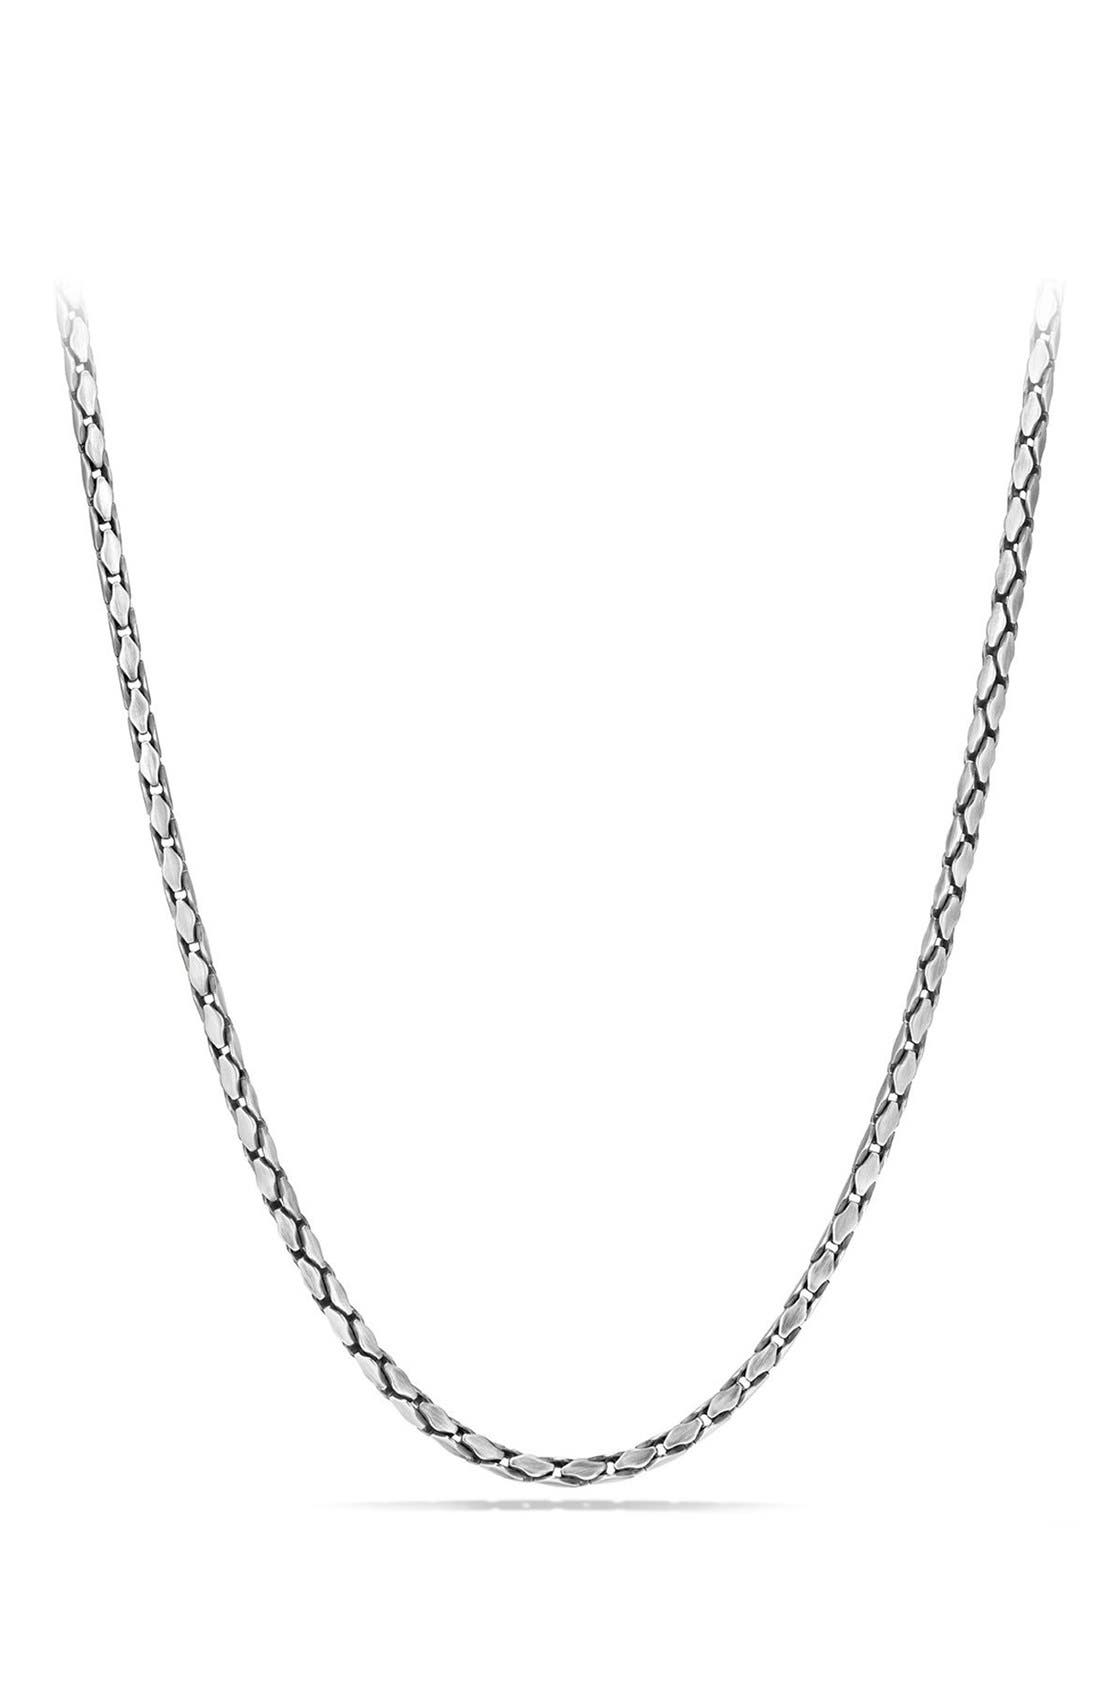 David Yurman 'Chain' Small Fluted Chain Necklace, 3.8mm